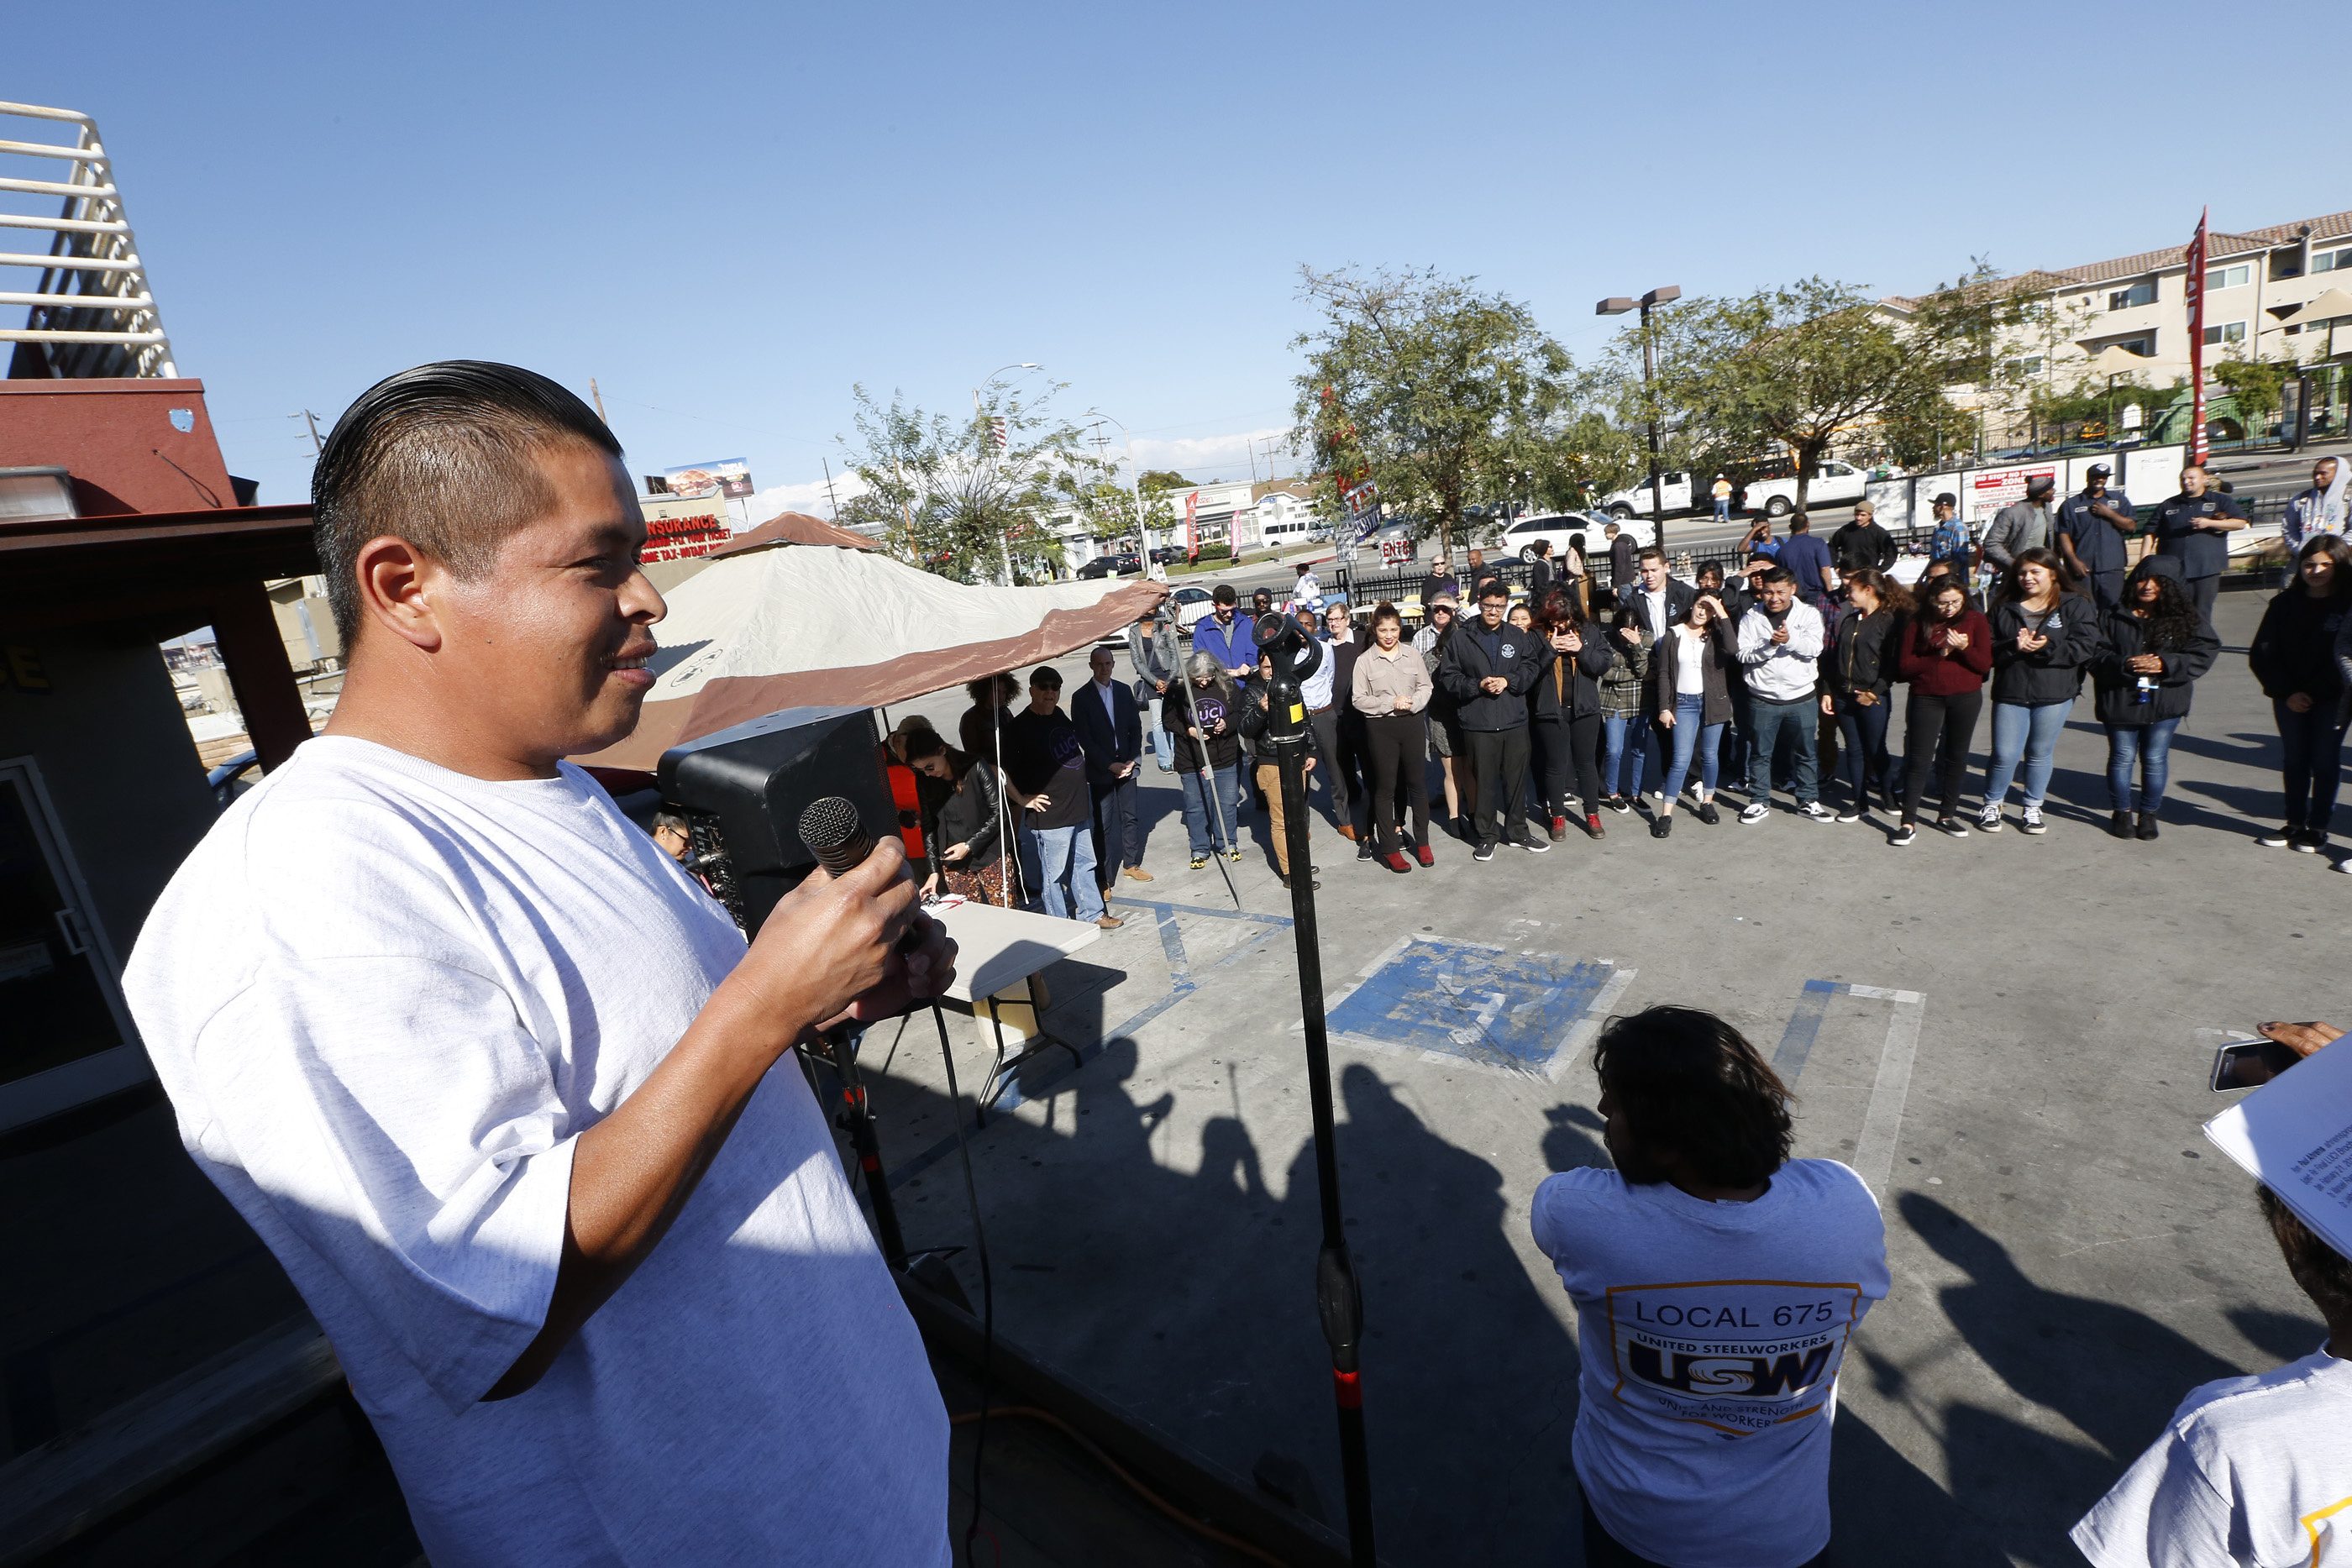 02/22/17 /LOS ANGELES/Car washero Miguel Cruz joined coworkers and owners from Vermont Gage Carwash celebrate with the community their anniversary and their union contract. The celebration included music from Los Jornaleros del Norte, vendors, merchandise from other local cooperatives, to celebrate the hard working spirit of this unique group of car washeros. (Photo Aurelia Ventura/La Opinion)